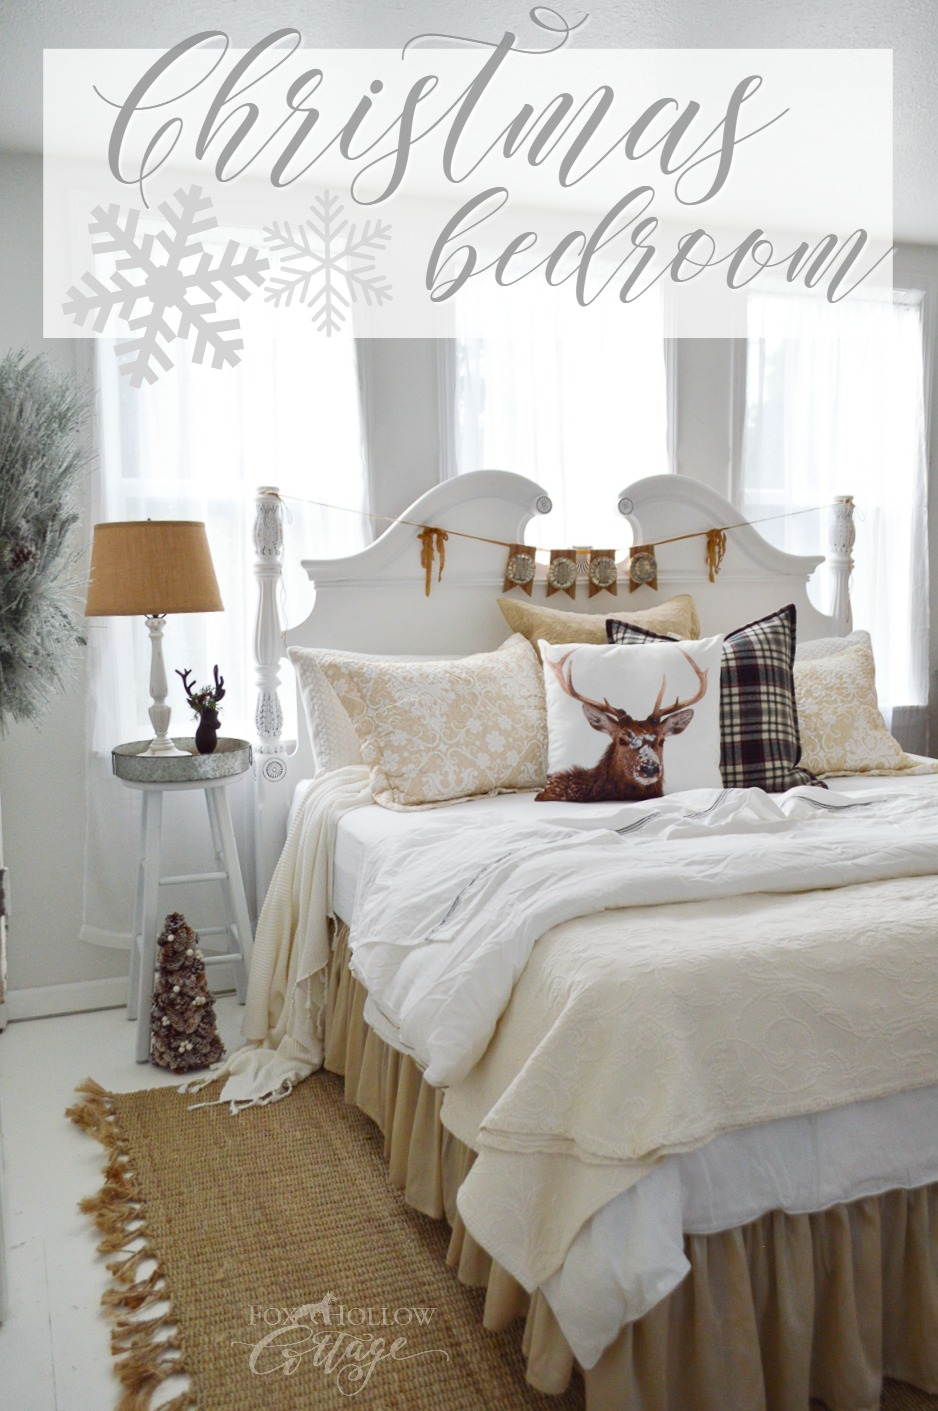 Merry Christmas Guest Bedroom at The Little Cottage foxhollowcottage.com Find Vintage, Cottage Farmhouse Style Decorating on a Budget!